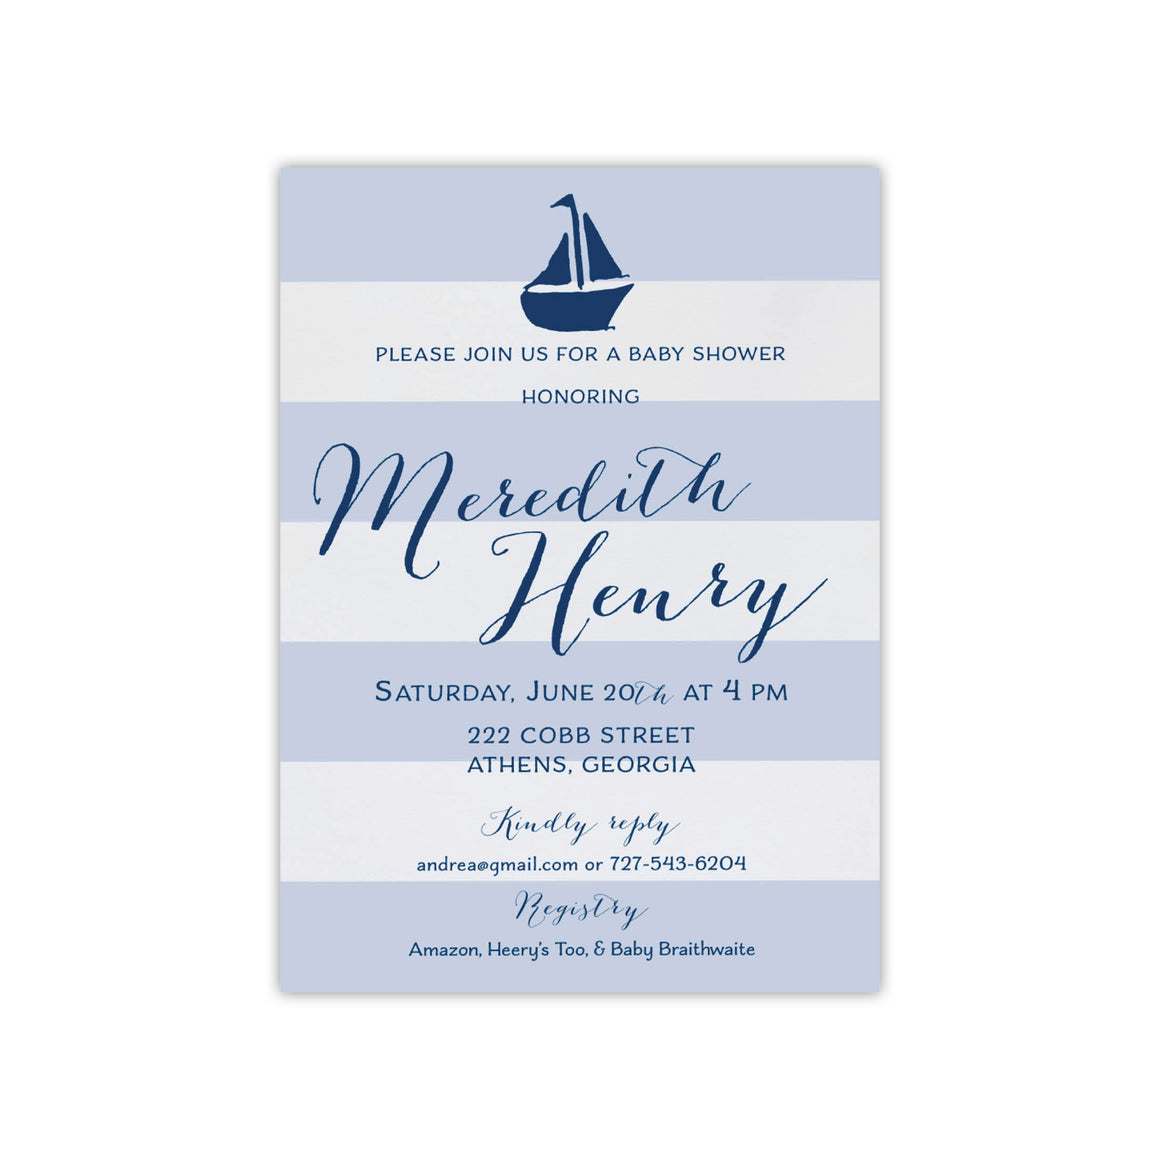 Sailboat and Stripes Baby Shower Invitation